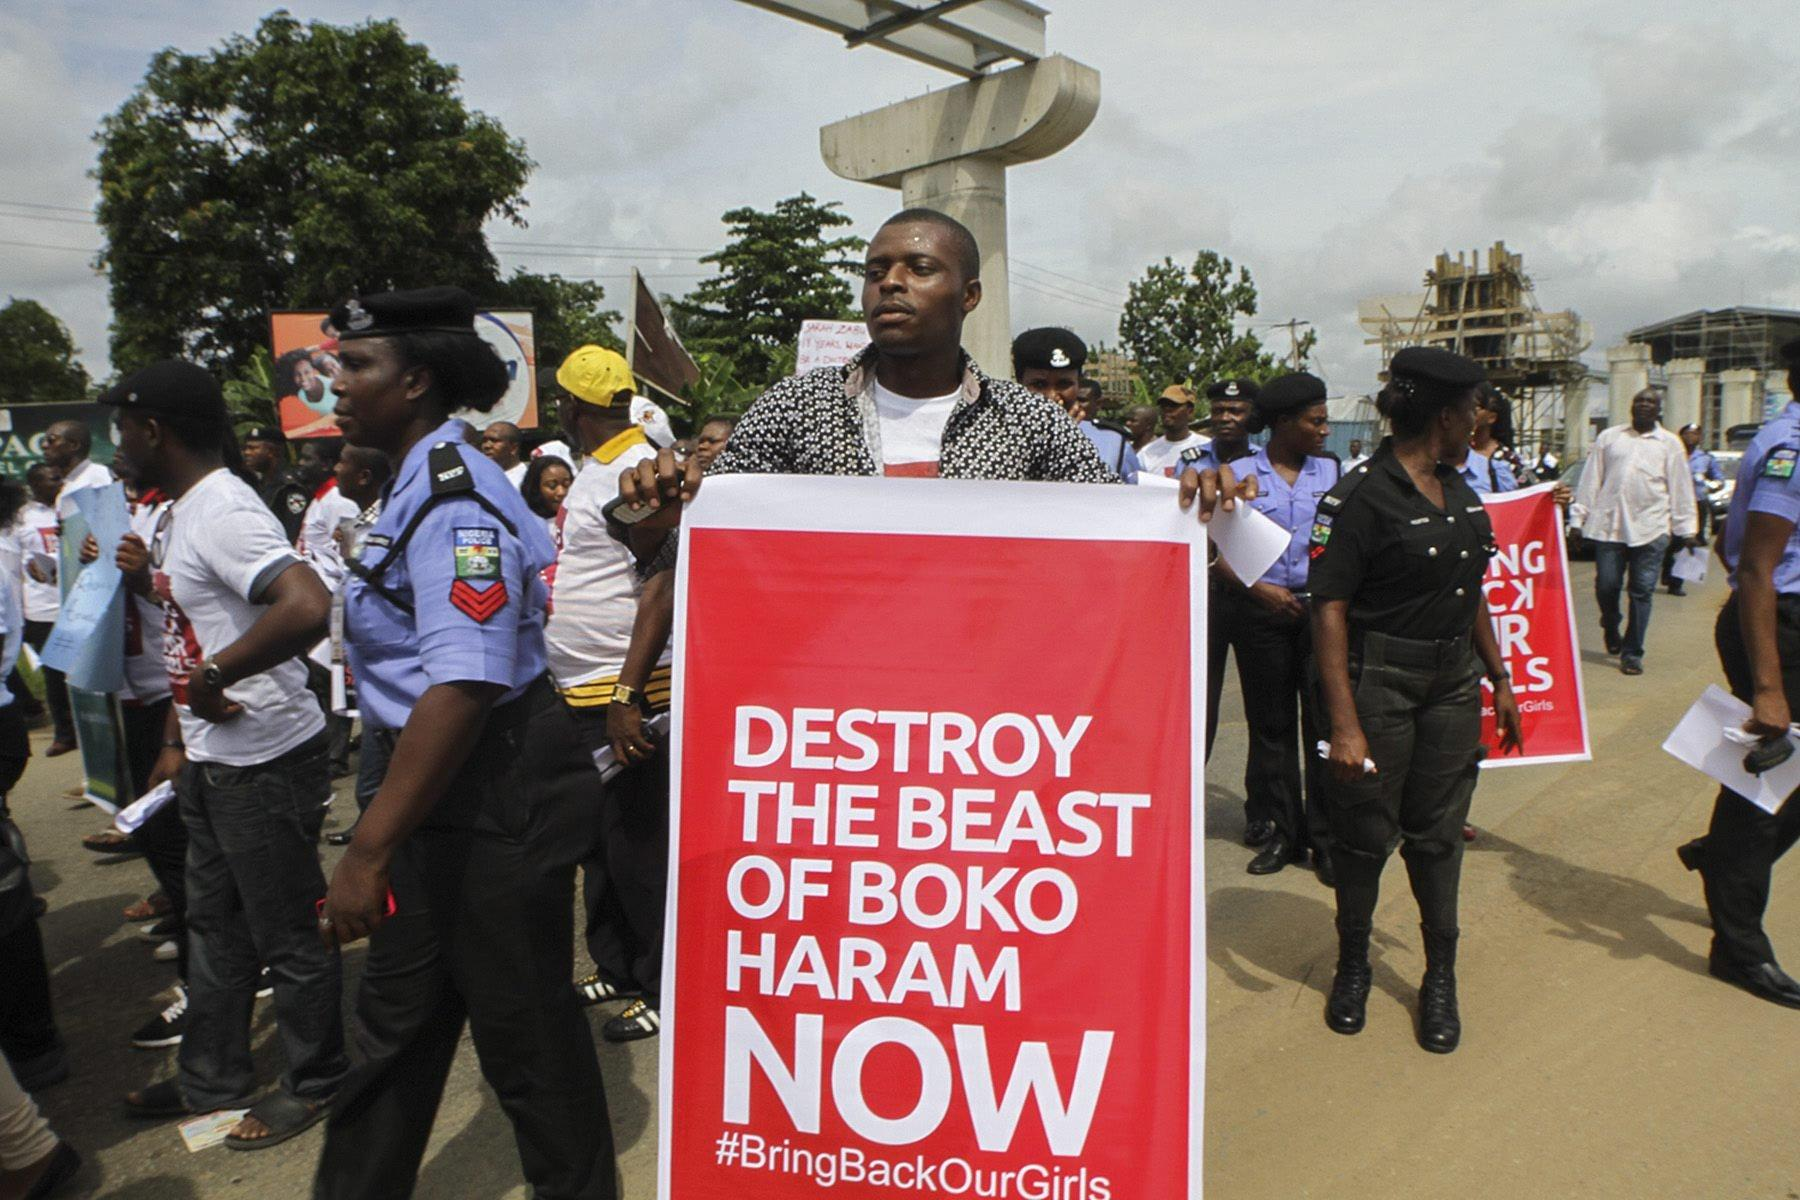 Image: Protest against Nigeria's failure to rescue abducted schoolgirls on Wednesday